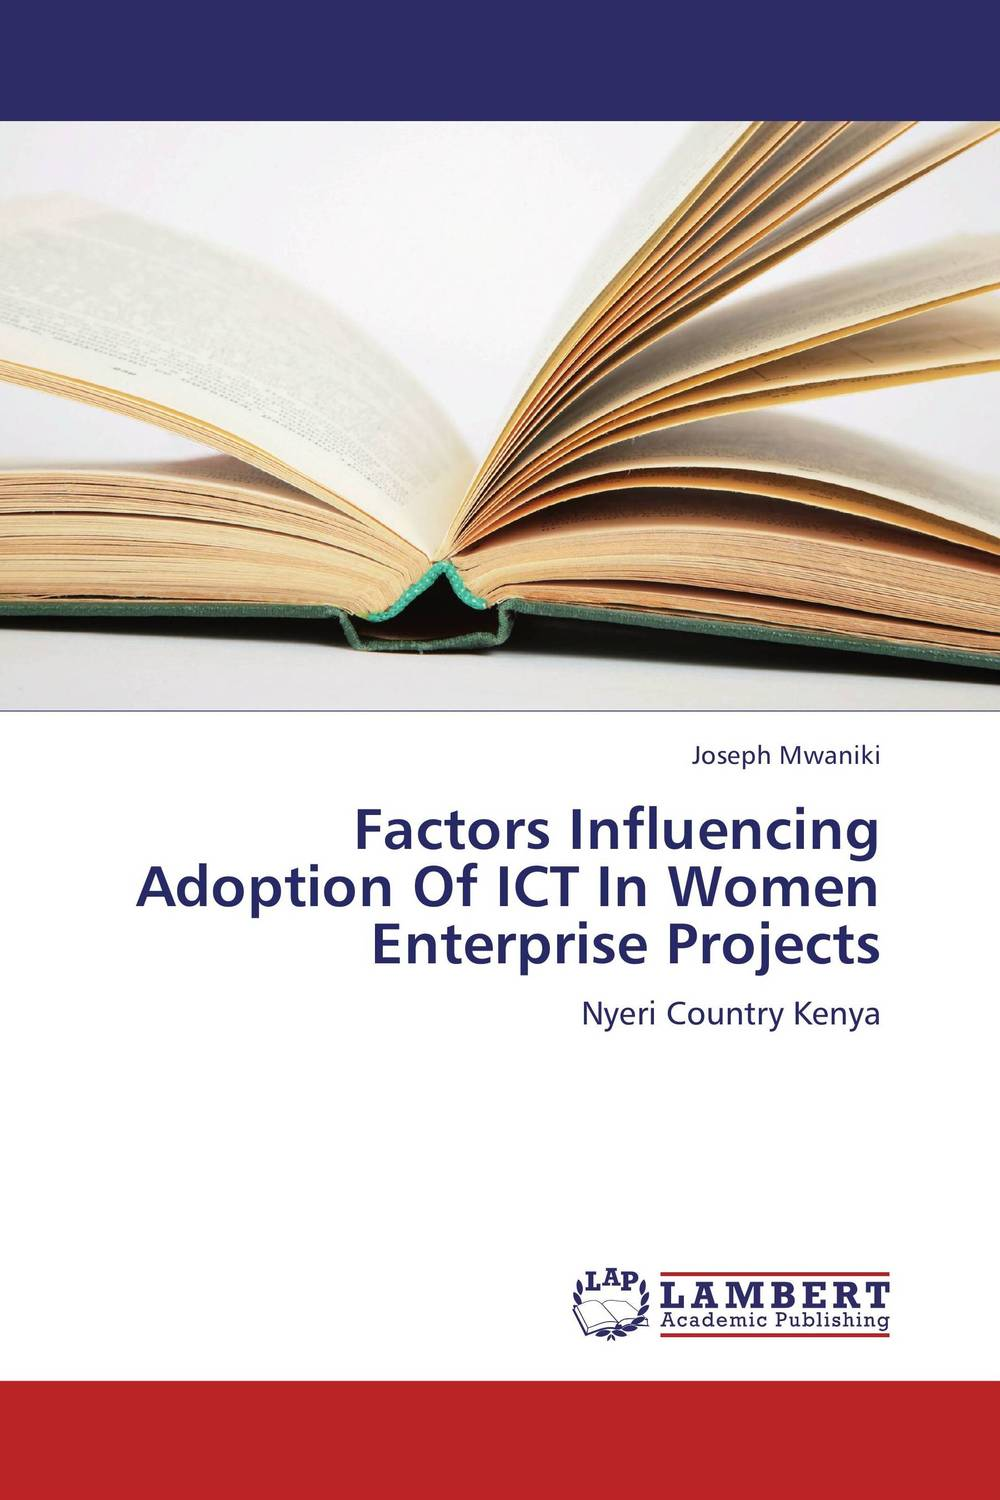 цены на Factors Influencing Adoption Of ICT In Women Enterprise Projects в интернет-магазинах